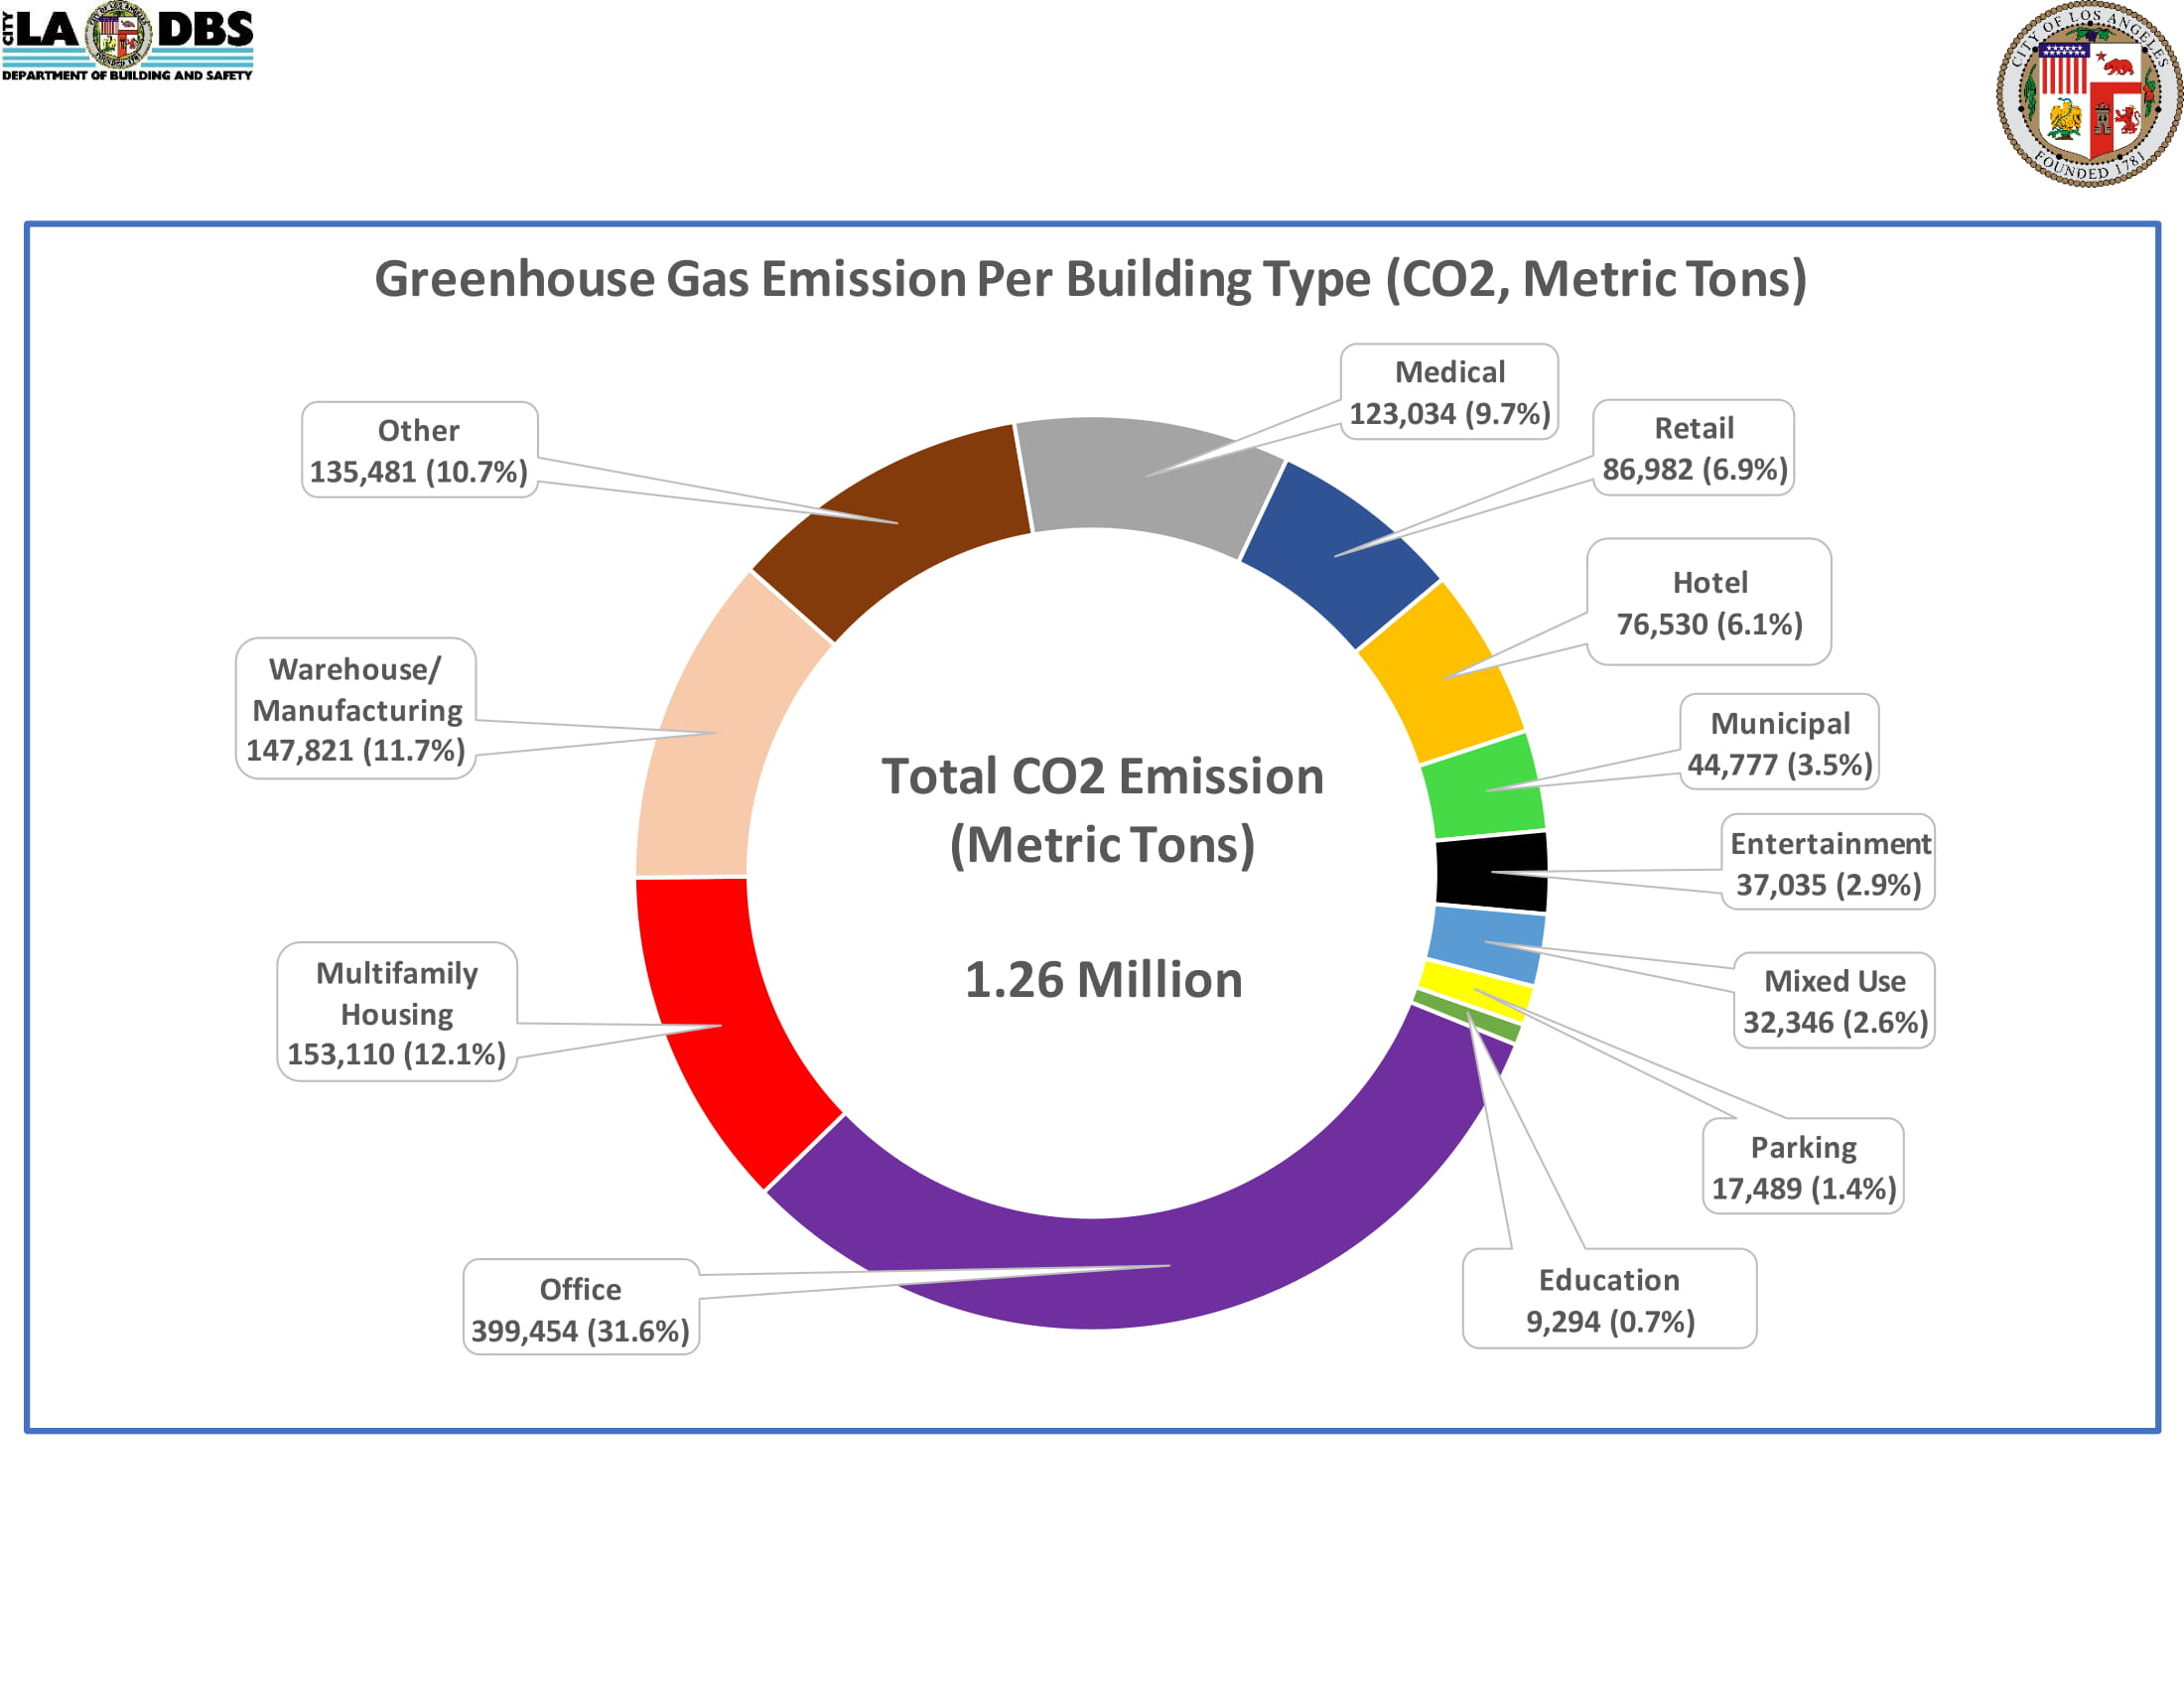 Greenhouse Gas Emission Per Building Type (CO2 Metric Tons)